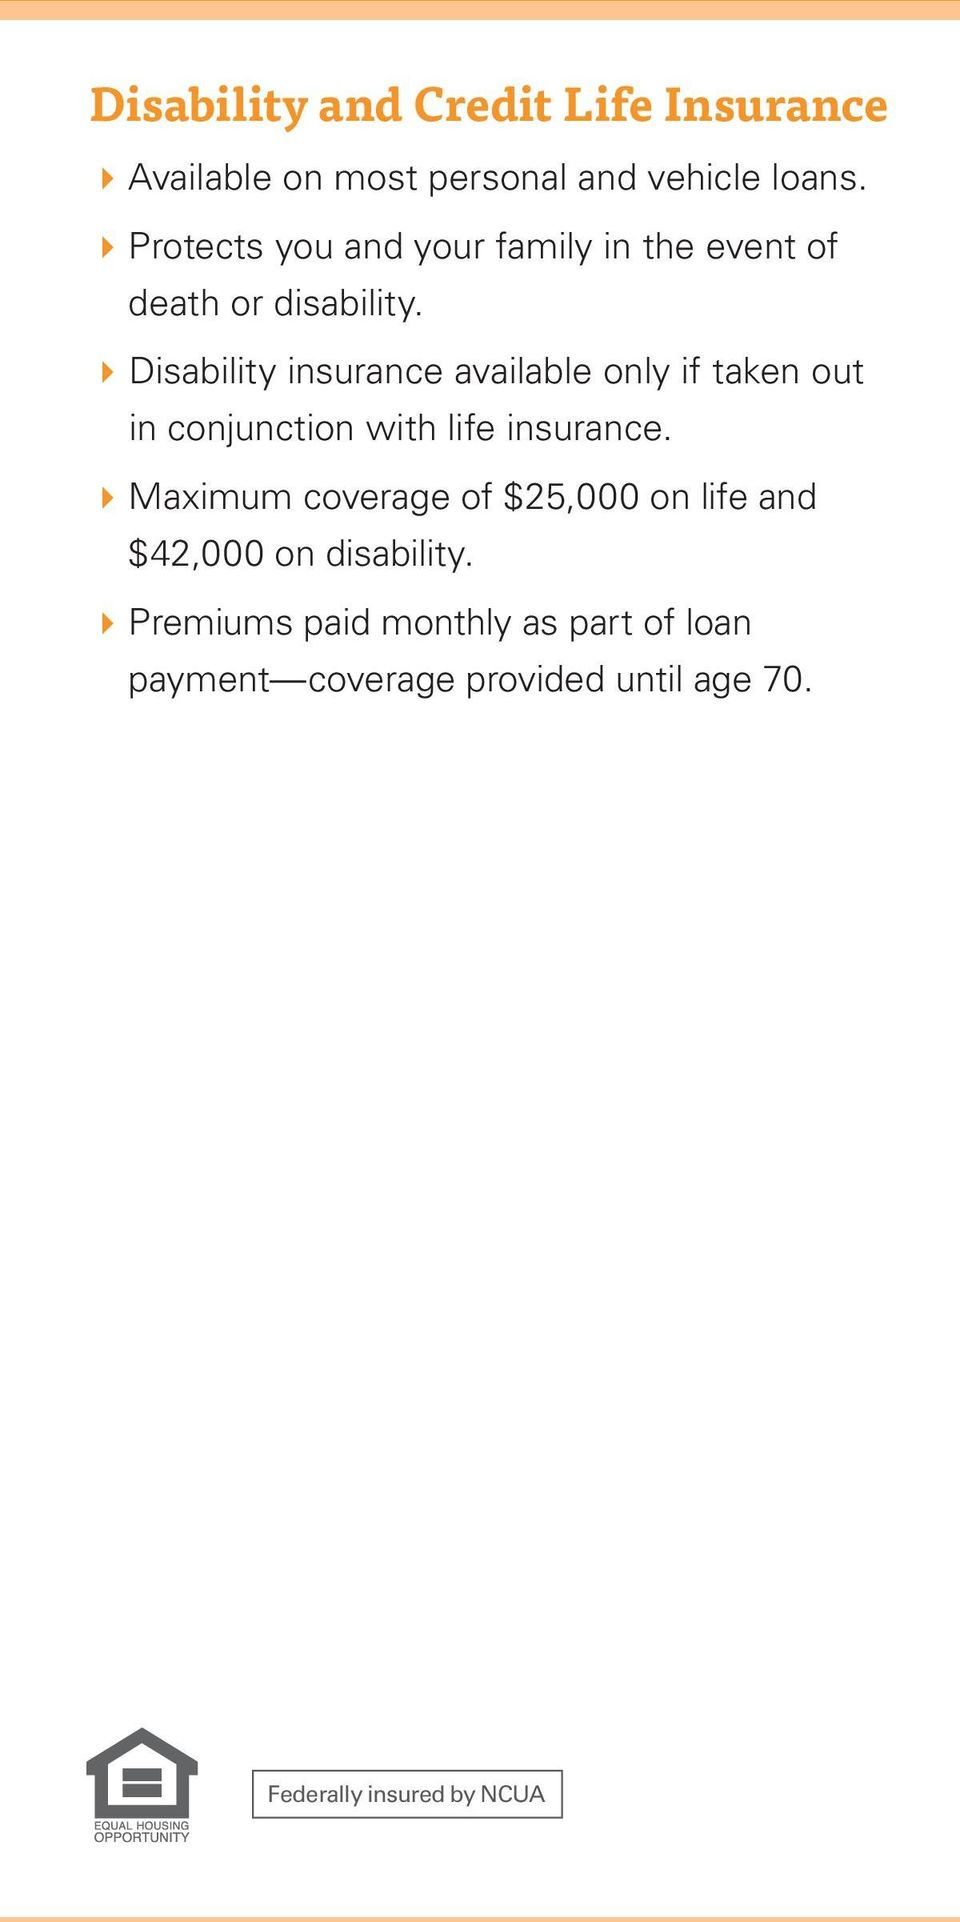 4Disability insurance available only if taken out in conjunction with life insurance.